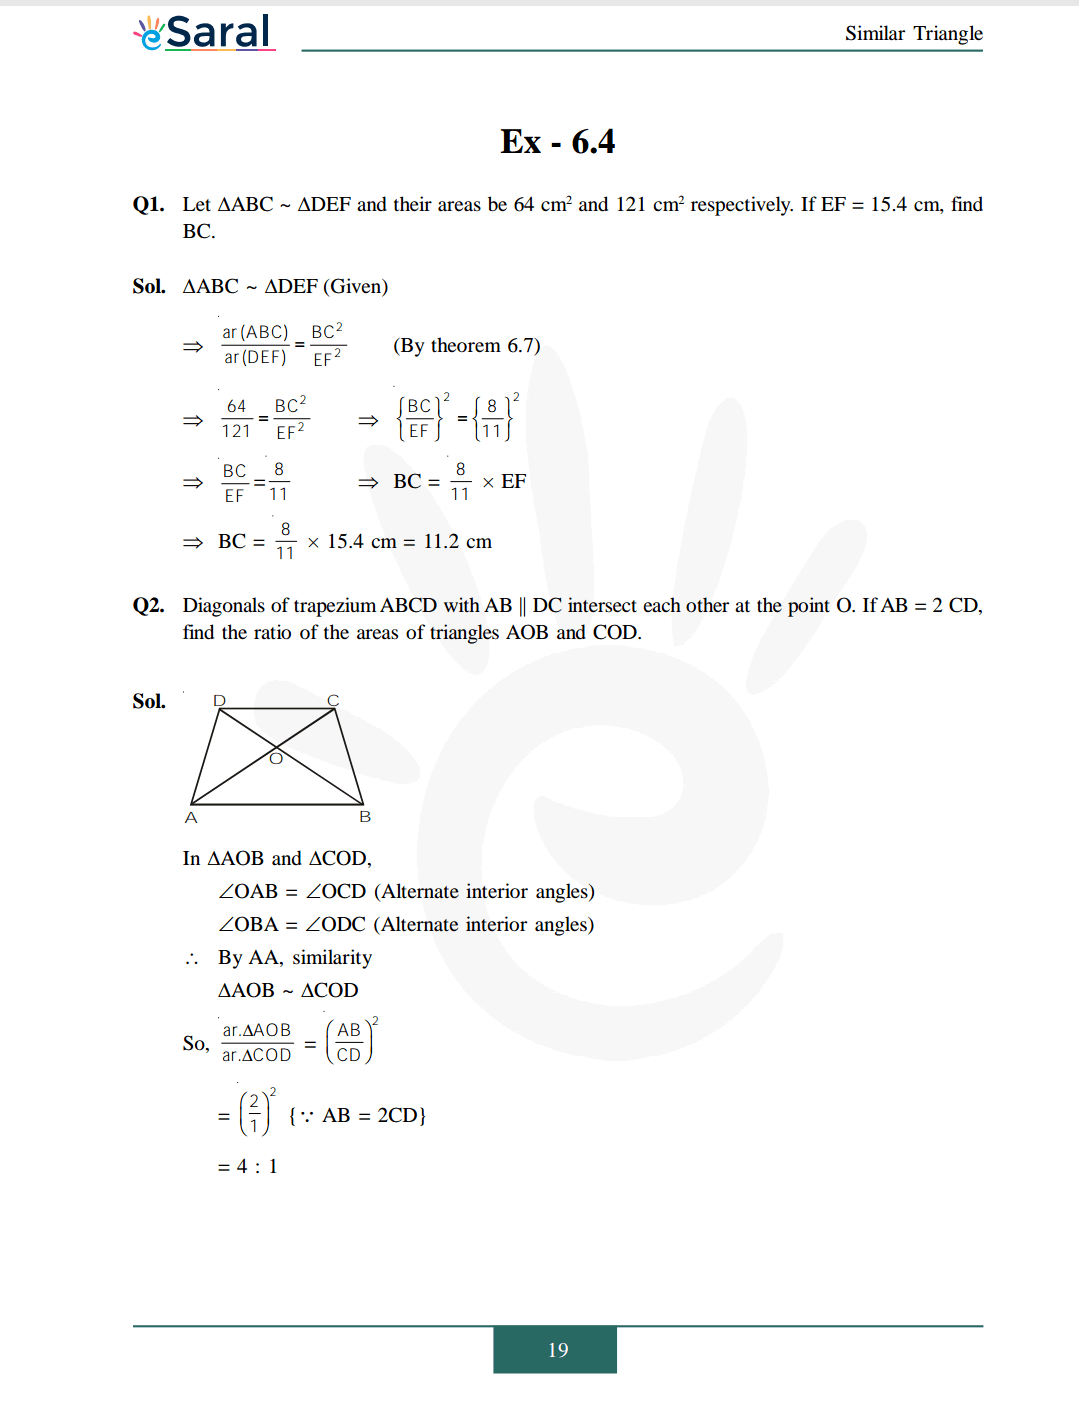 Solutions Image 20